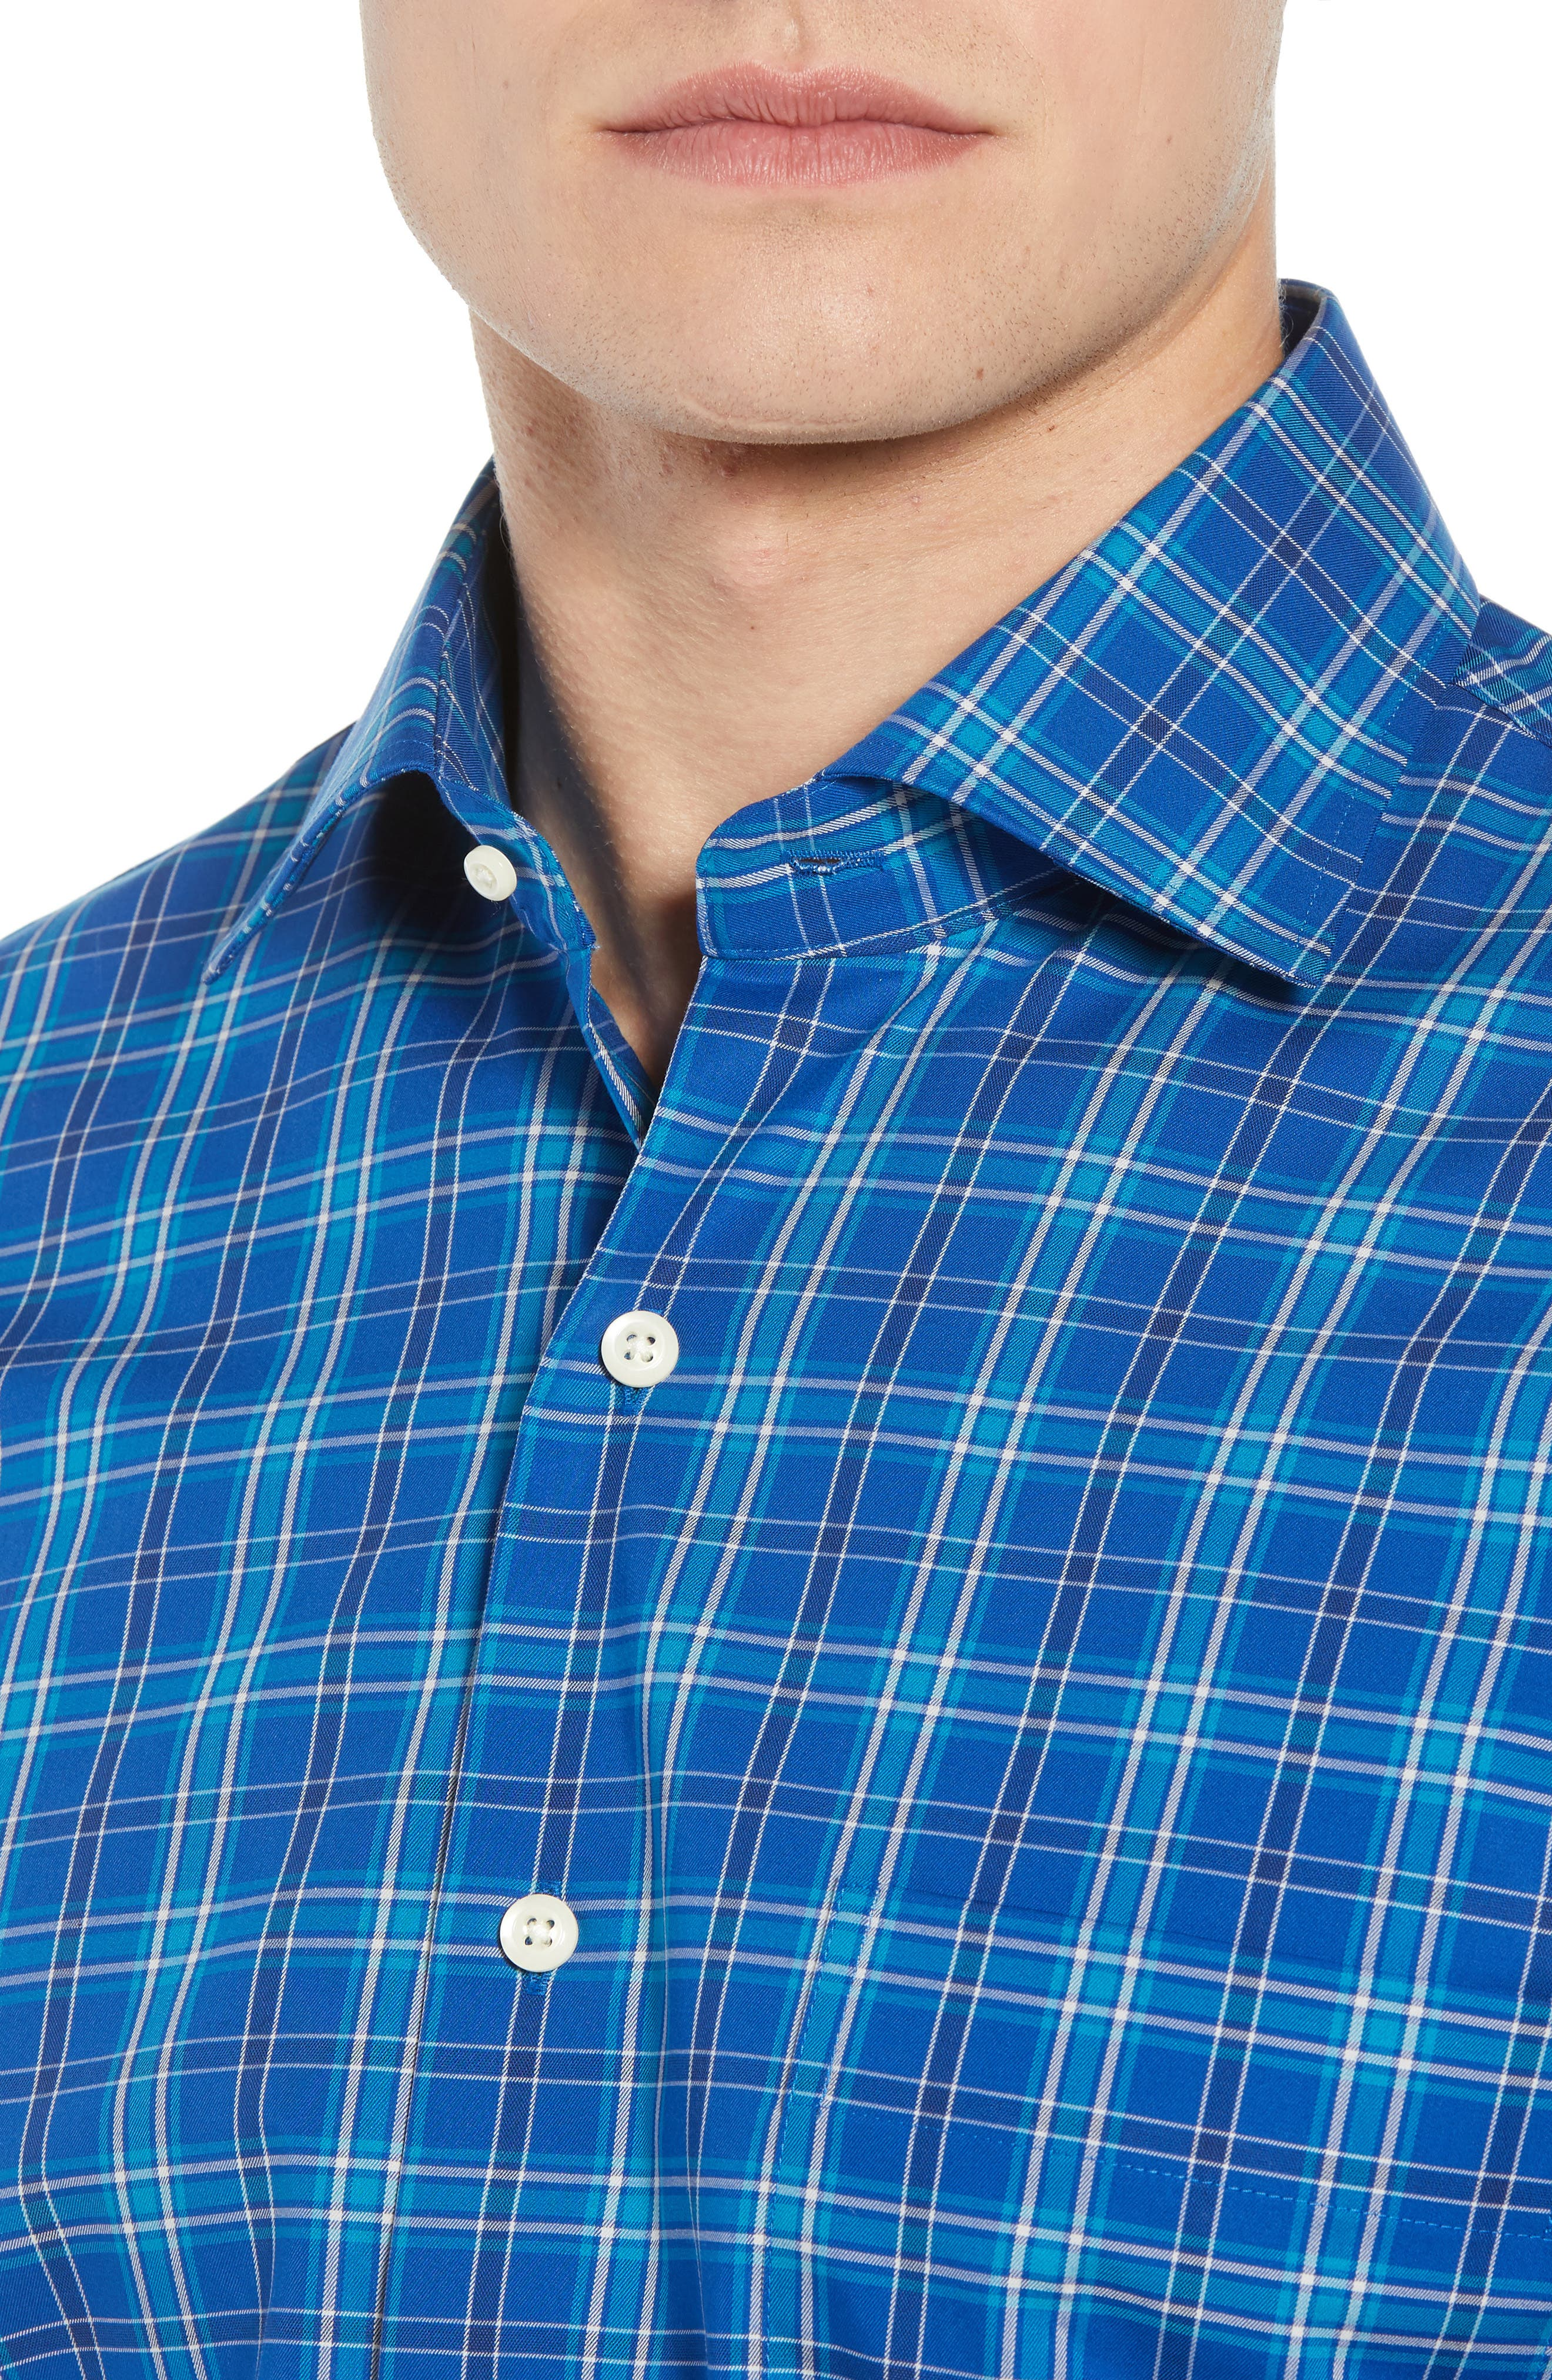 Crown Ease Salamanca Regular Fit Plaid Sport Shirt,                             Alternate thumbnail 2, color,                             BLUE